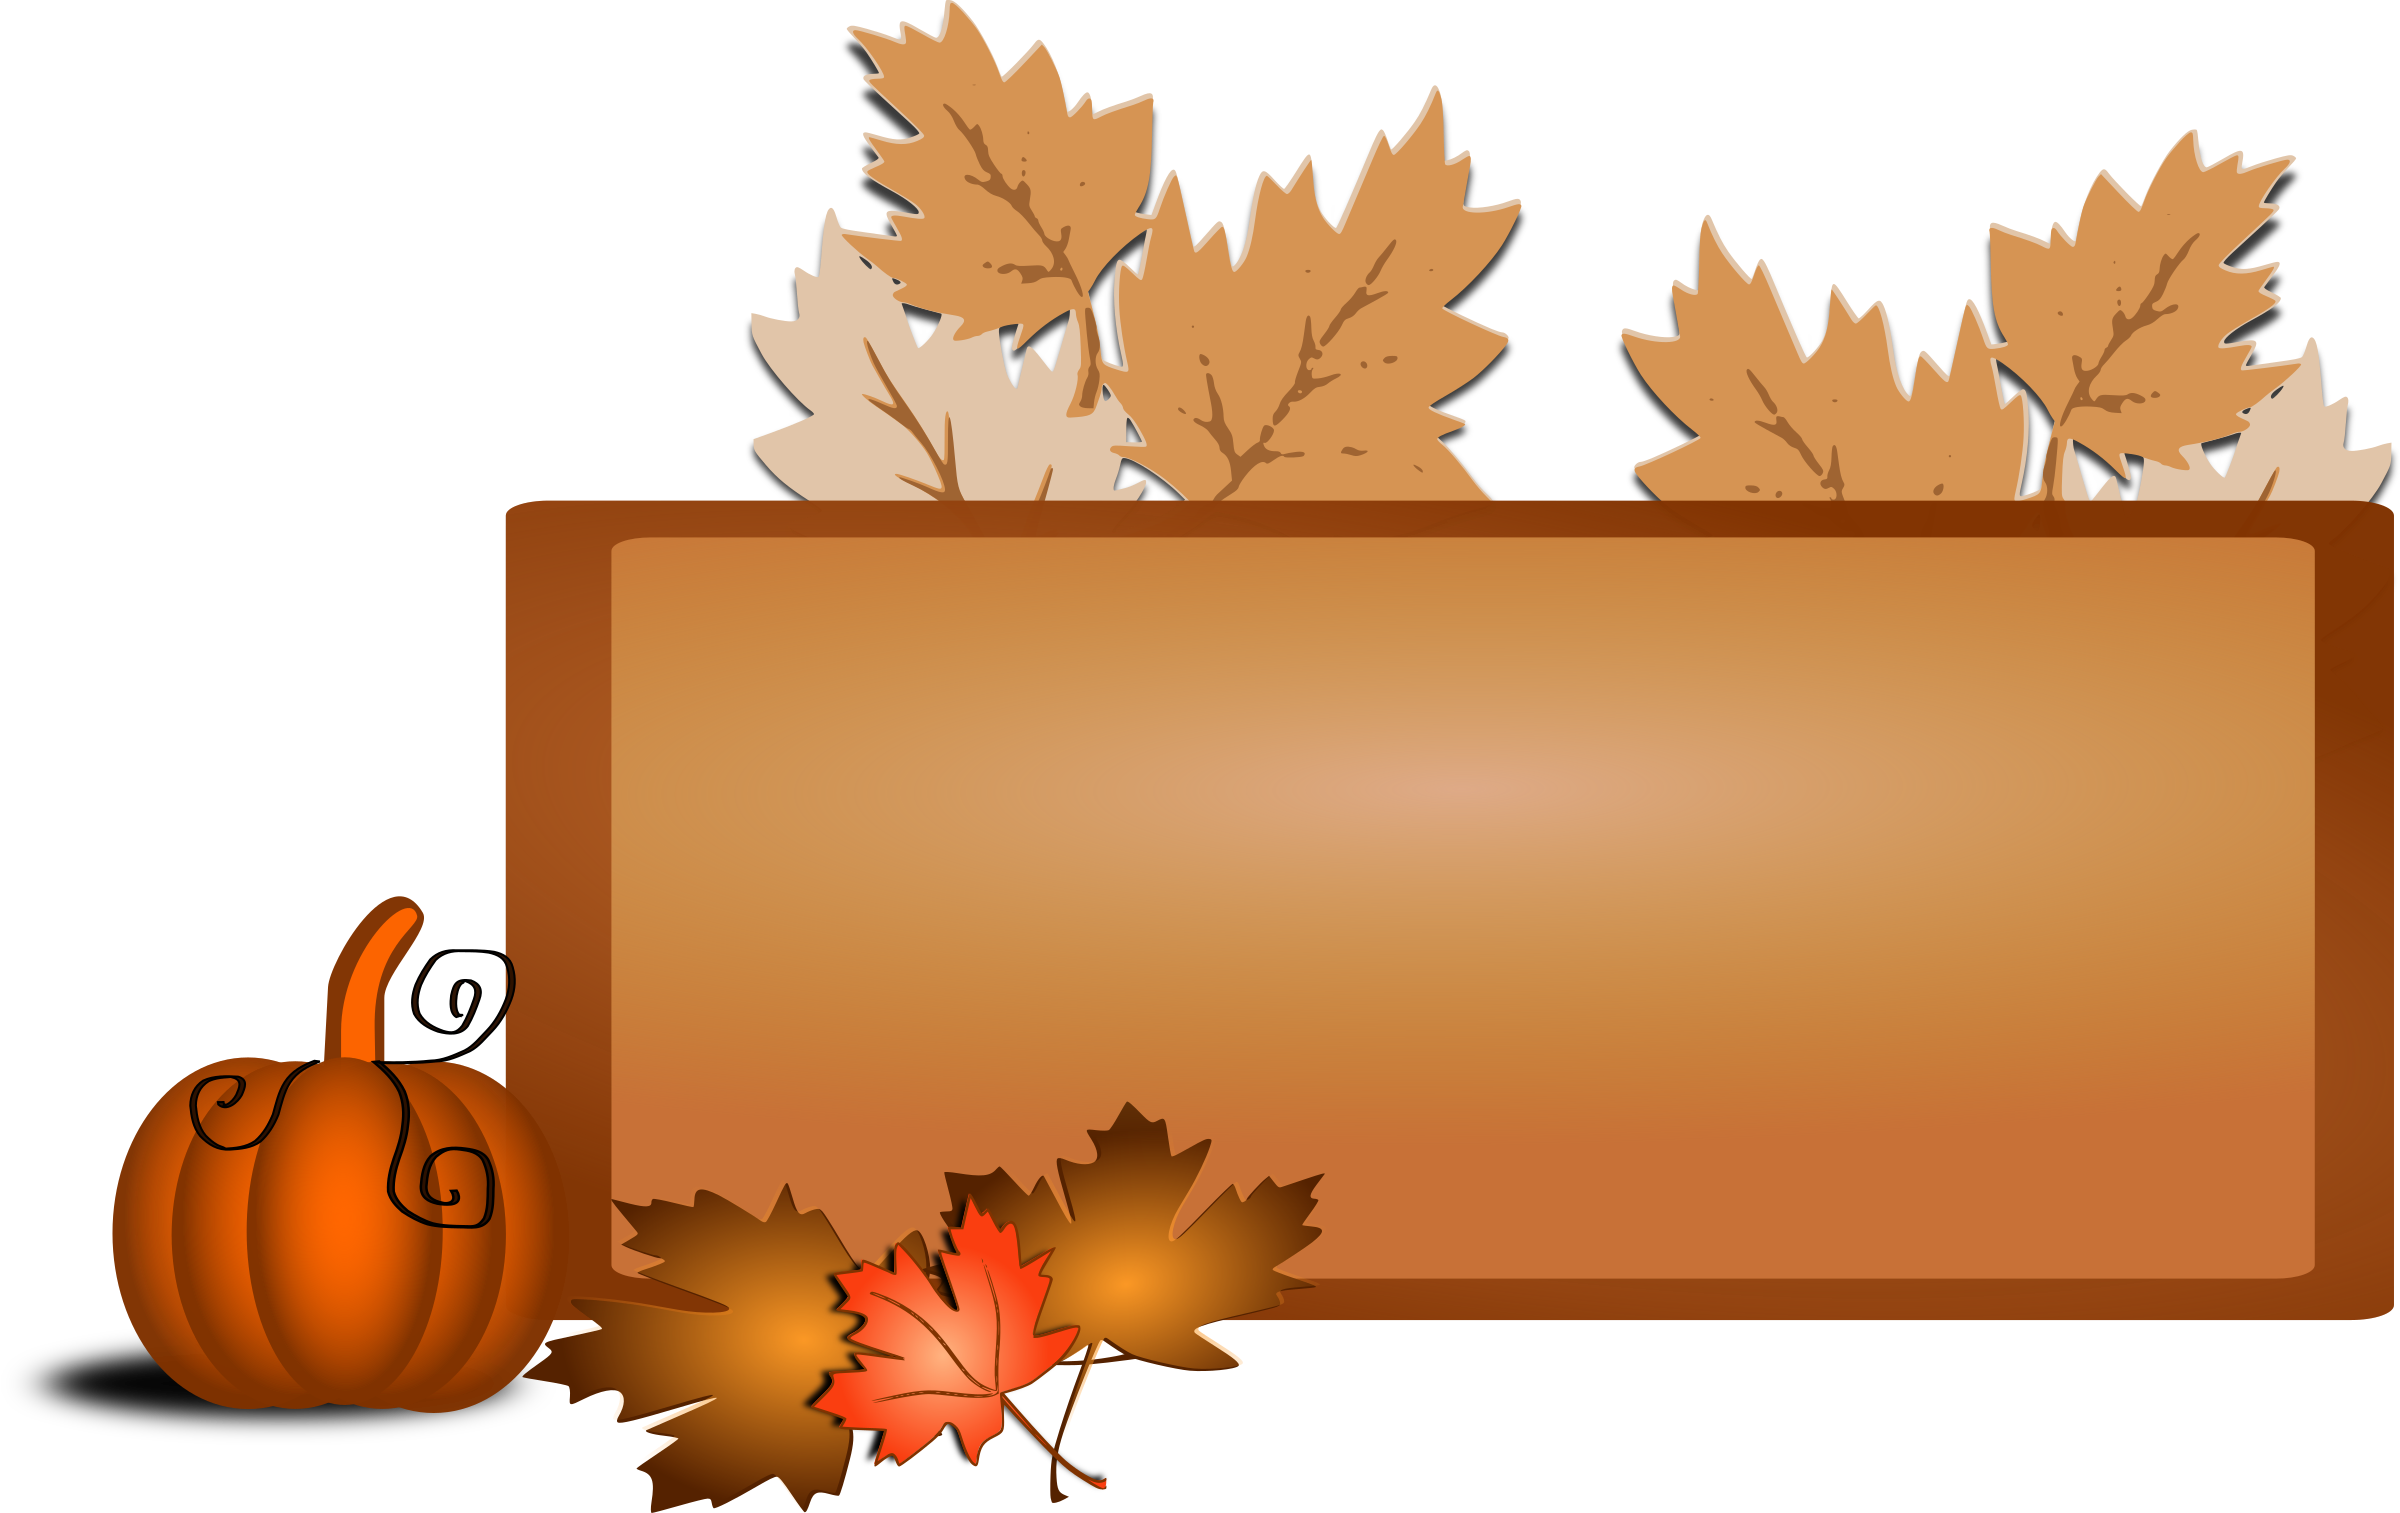 October clipart cute. Fall clip art big